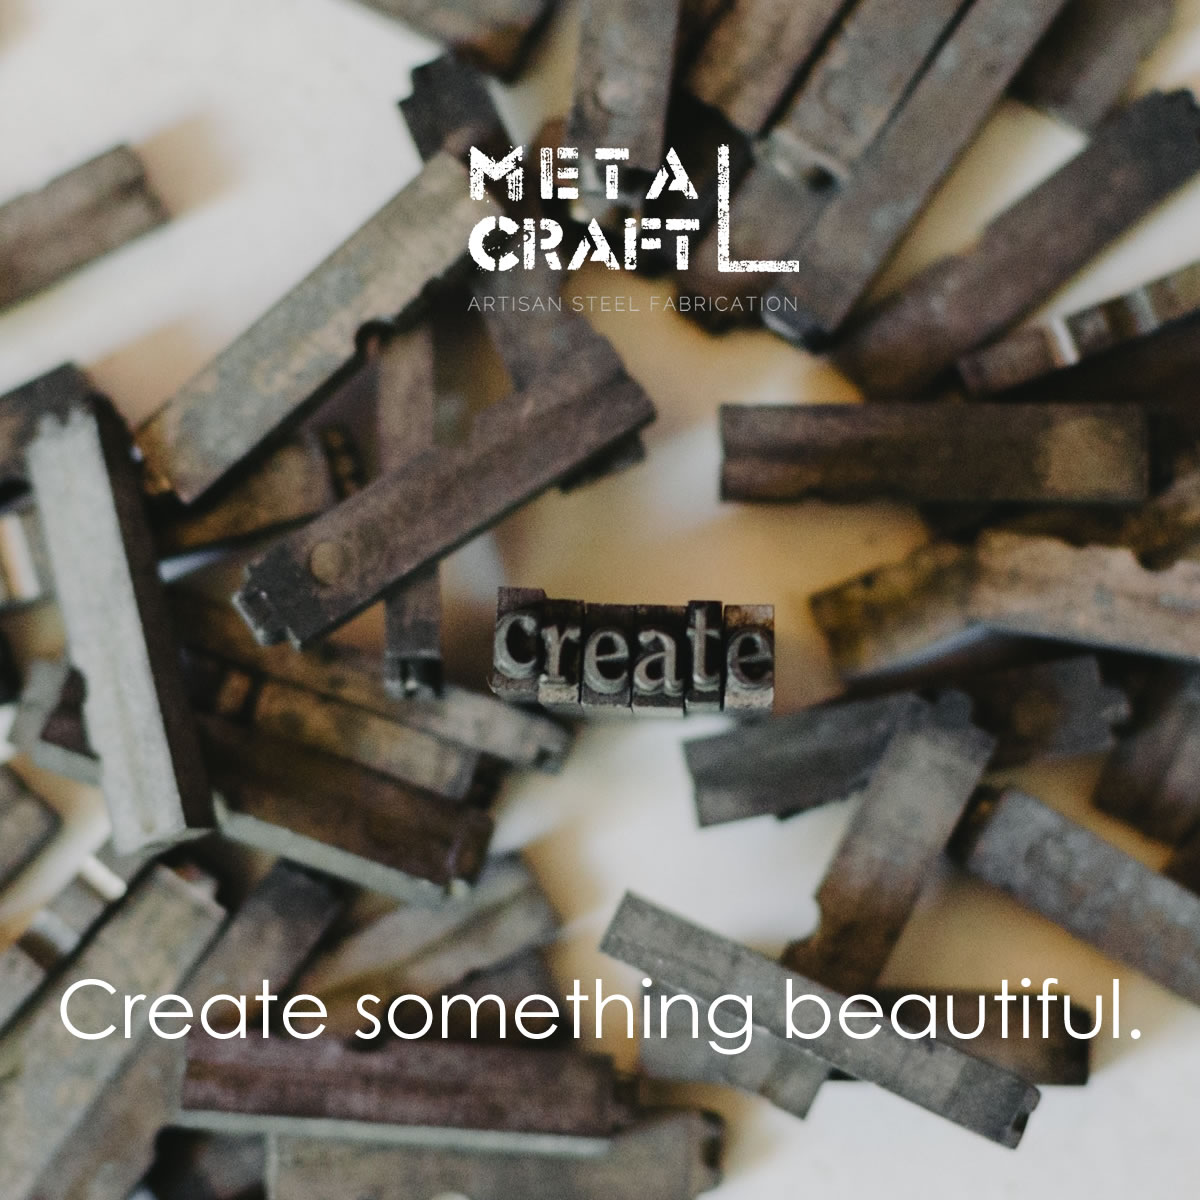 Meta Craft - Artisan Steel Fabrication